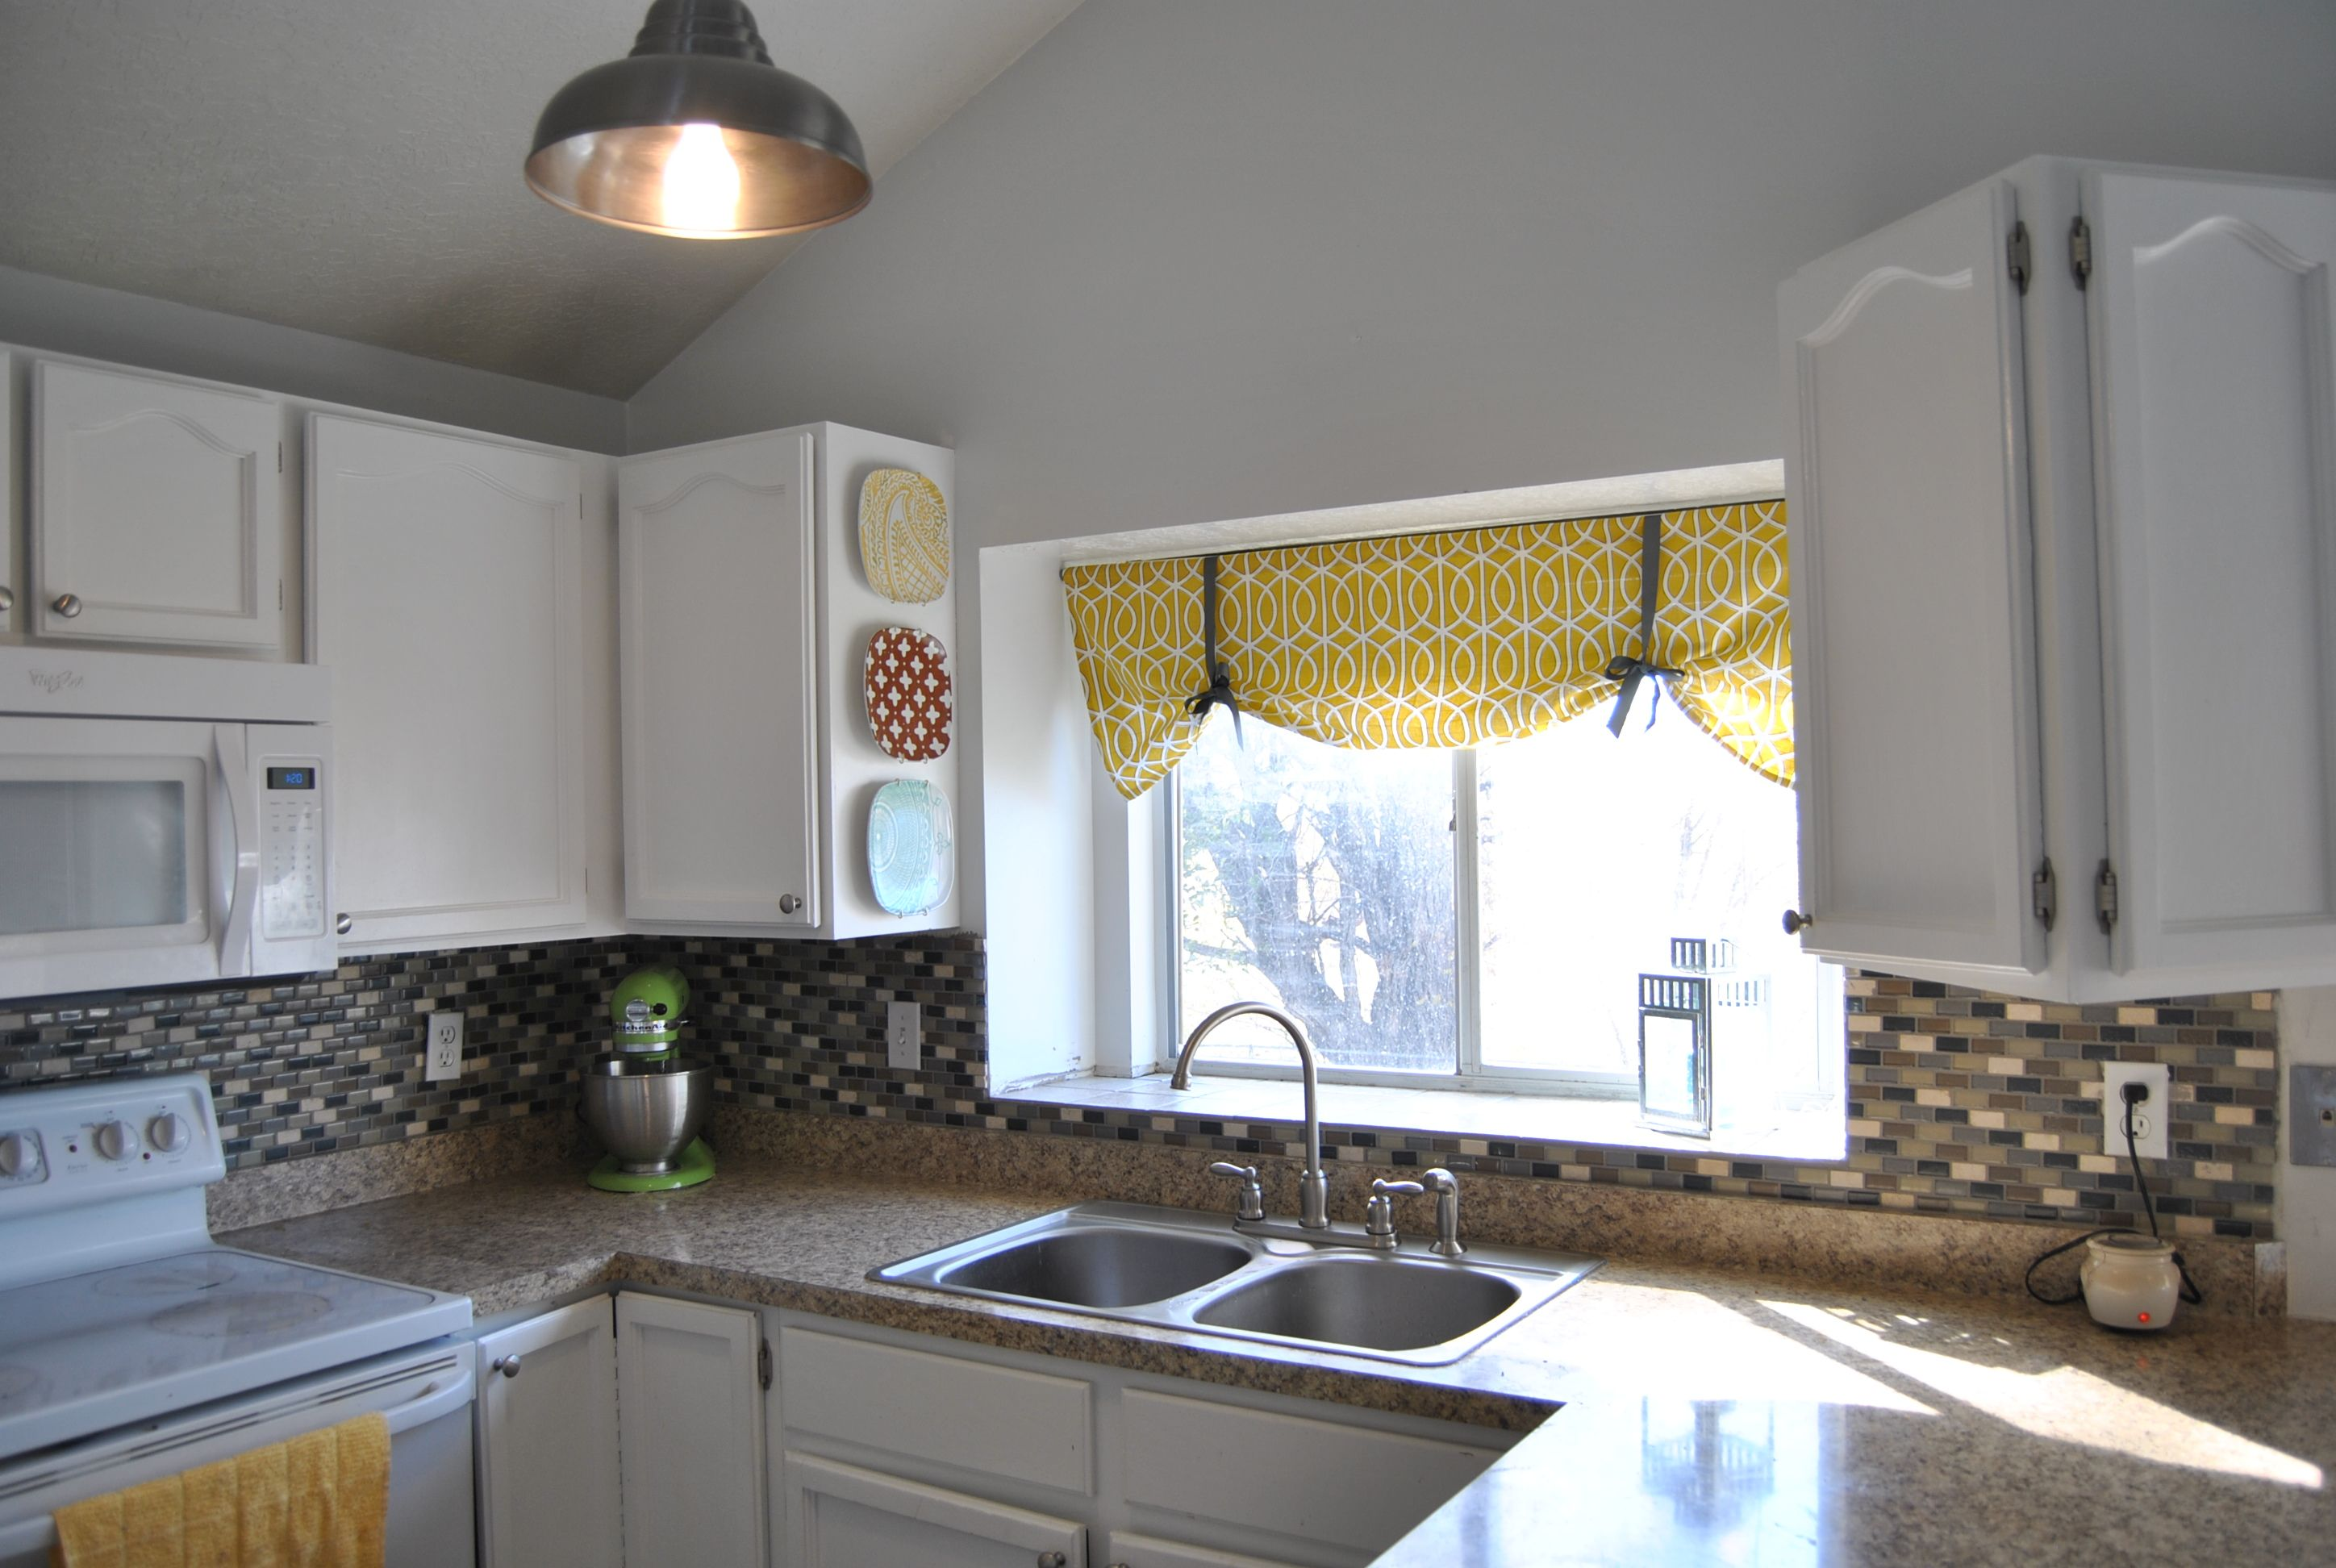 Modern kitchen window design  image detail for simple faux roman shade tutorial  the bungalow